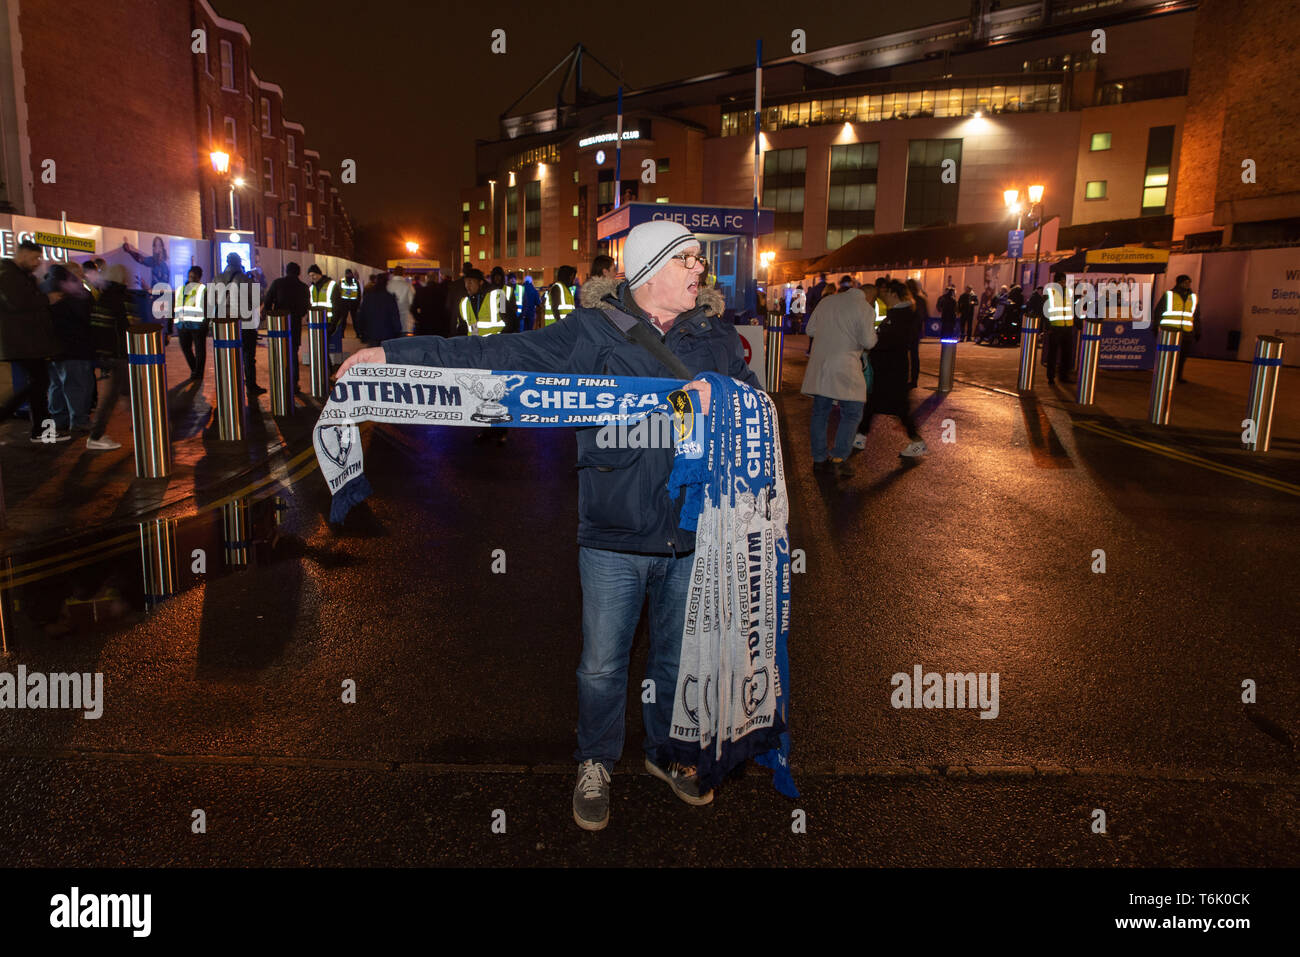 Chelsea scarves seller near Stamford Bridge, Chelsea F.C's home ground before a game against Tottenham Hotspur. - Stock Image